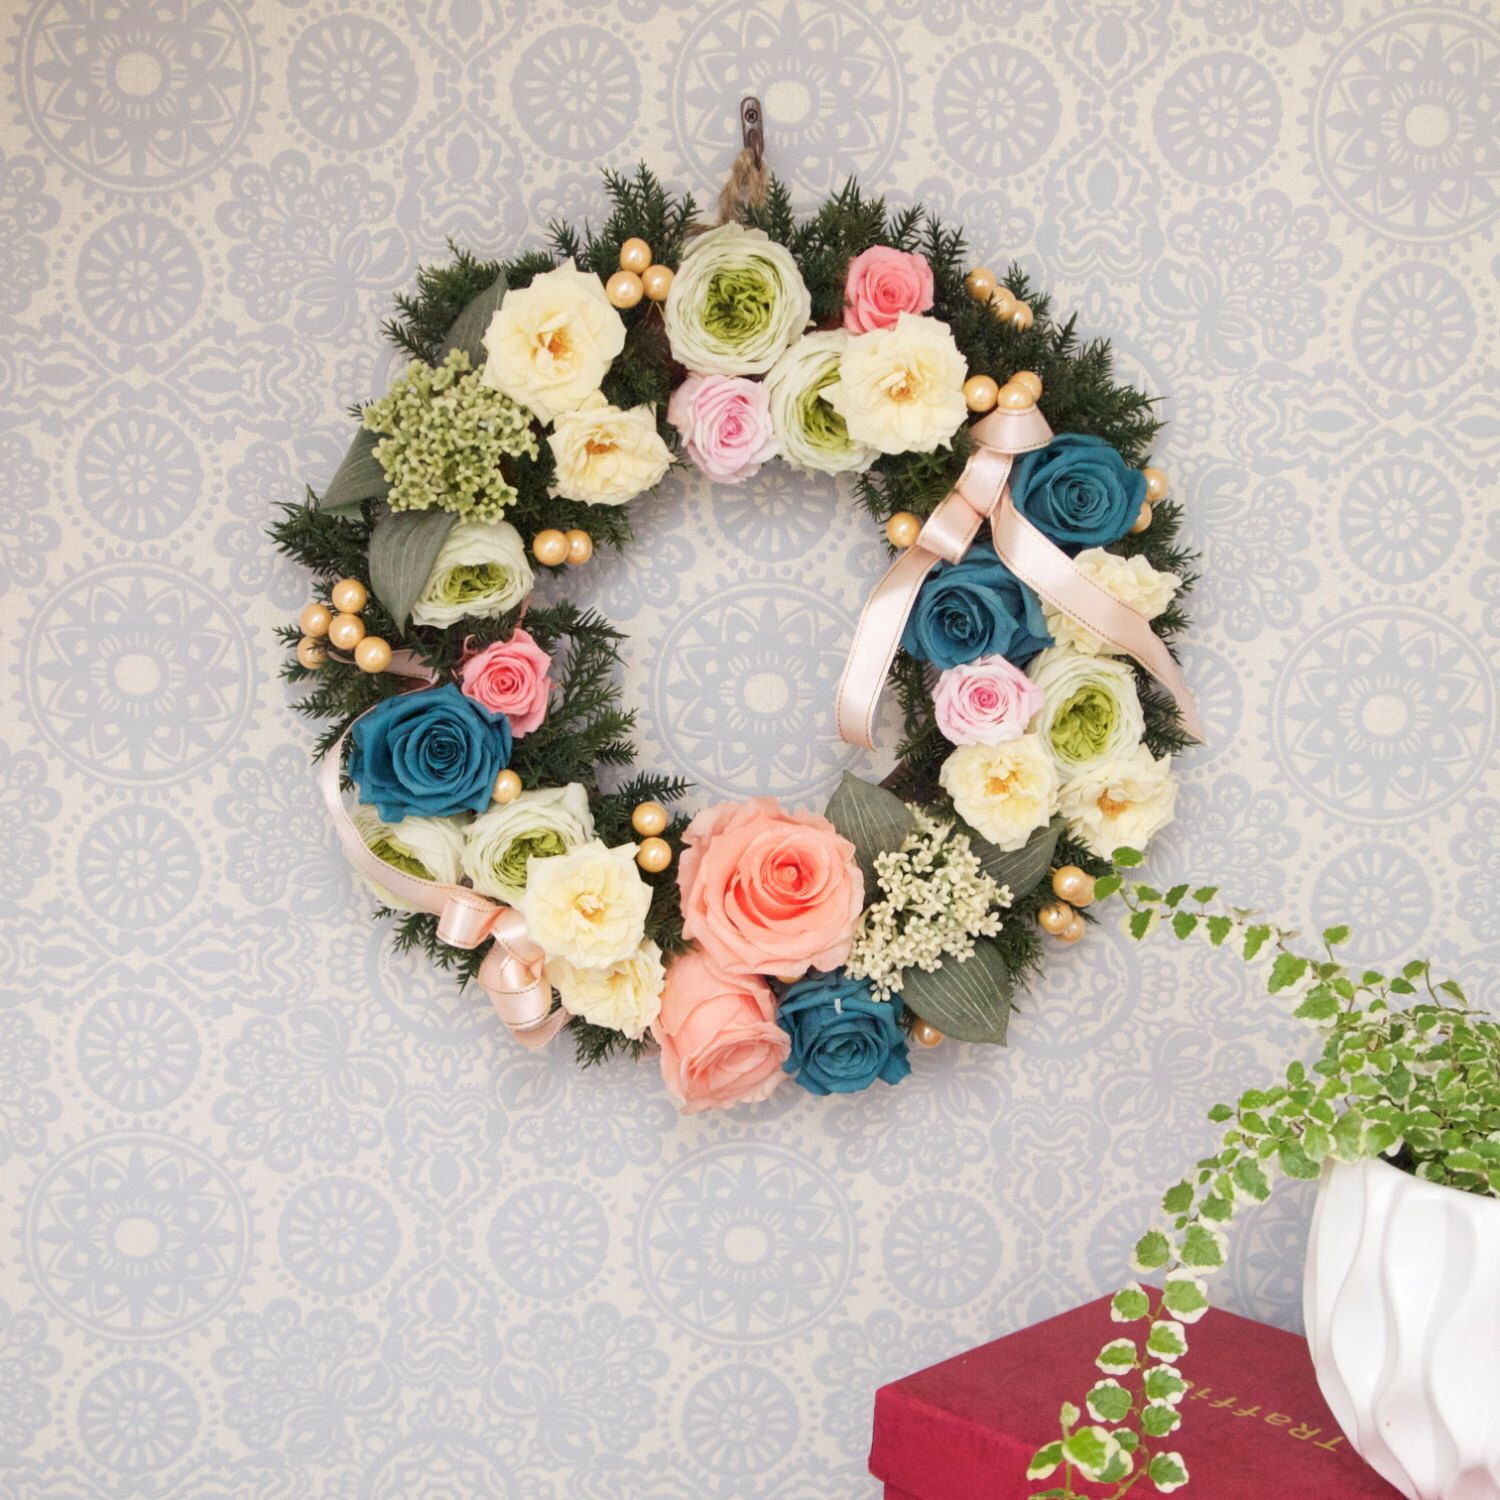 Full rose wreath by WealthyWreath on Etsy https://www.etsy.com/listing/212965226/full-rose-wreath